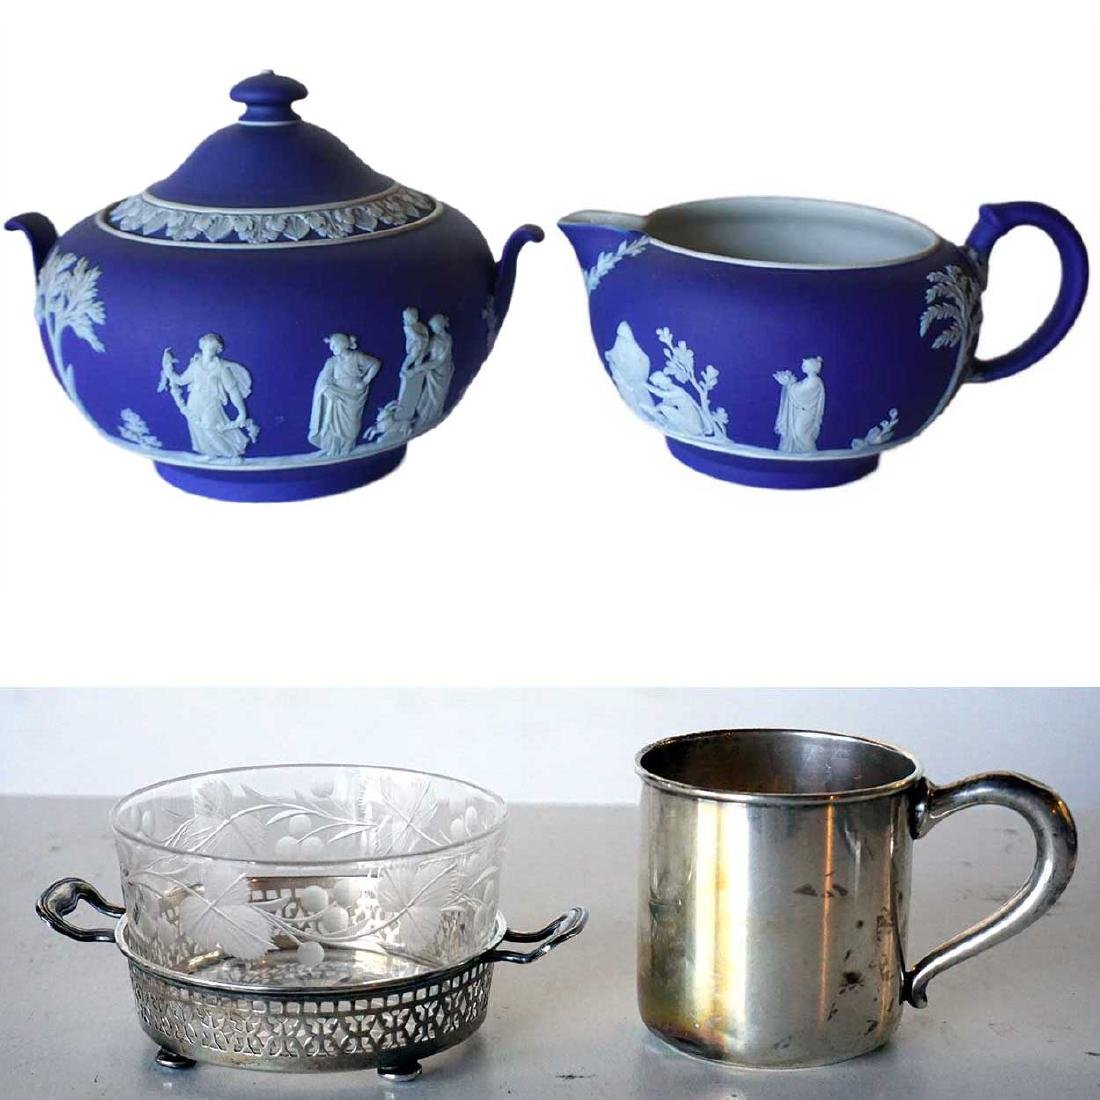 2 pc Wedgwood Jasperware, Silver Baby Cup & Butter Dish